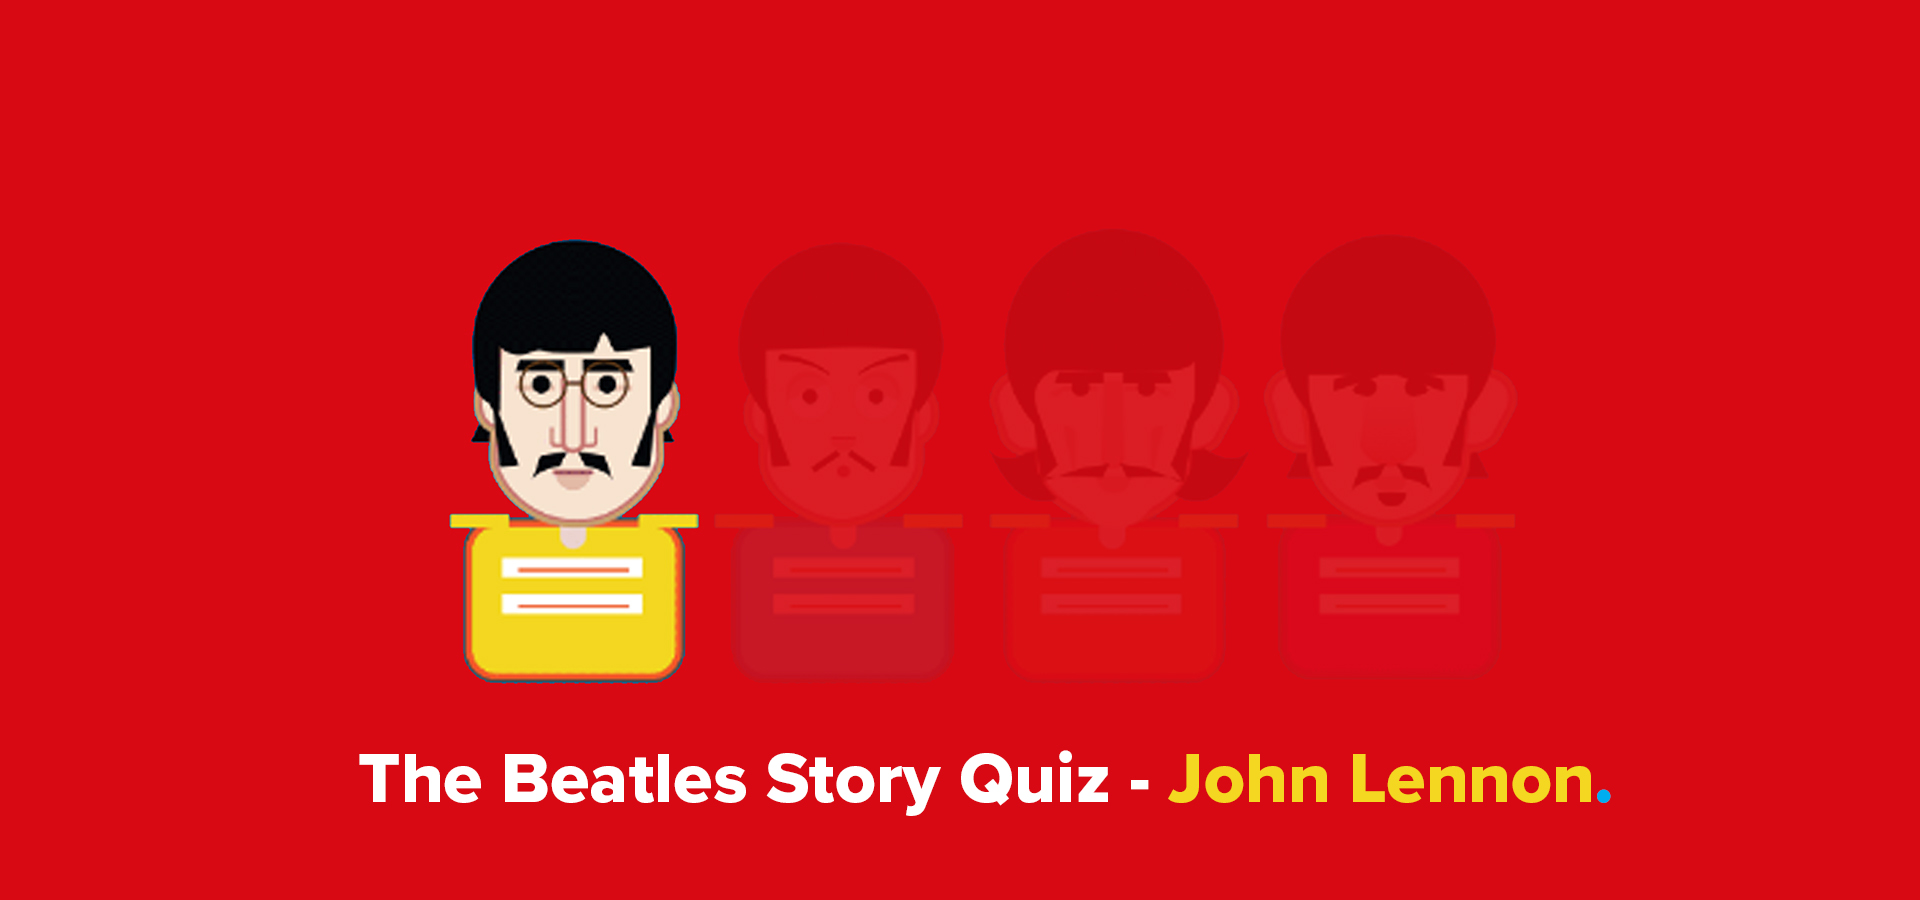 The John Lennon Quiz